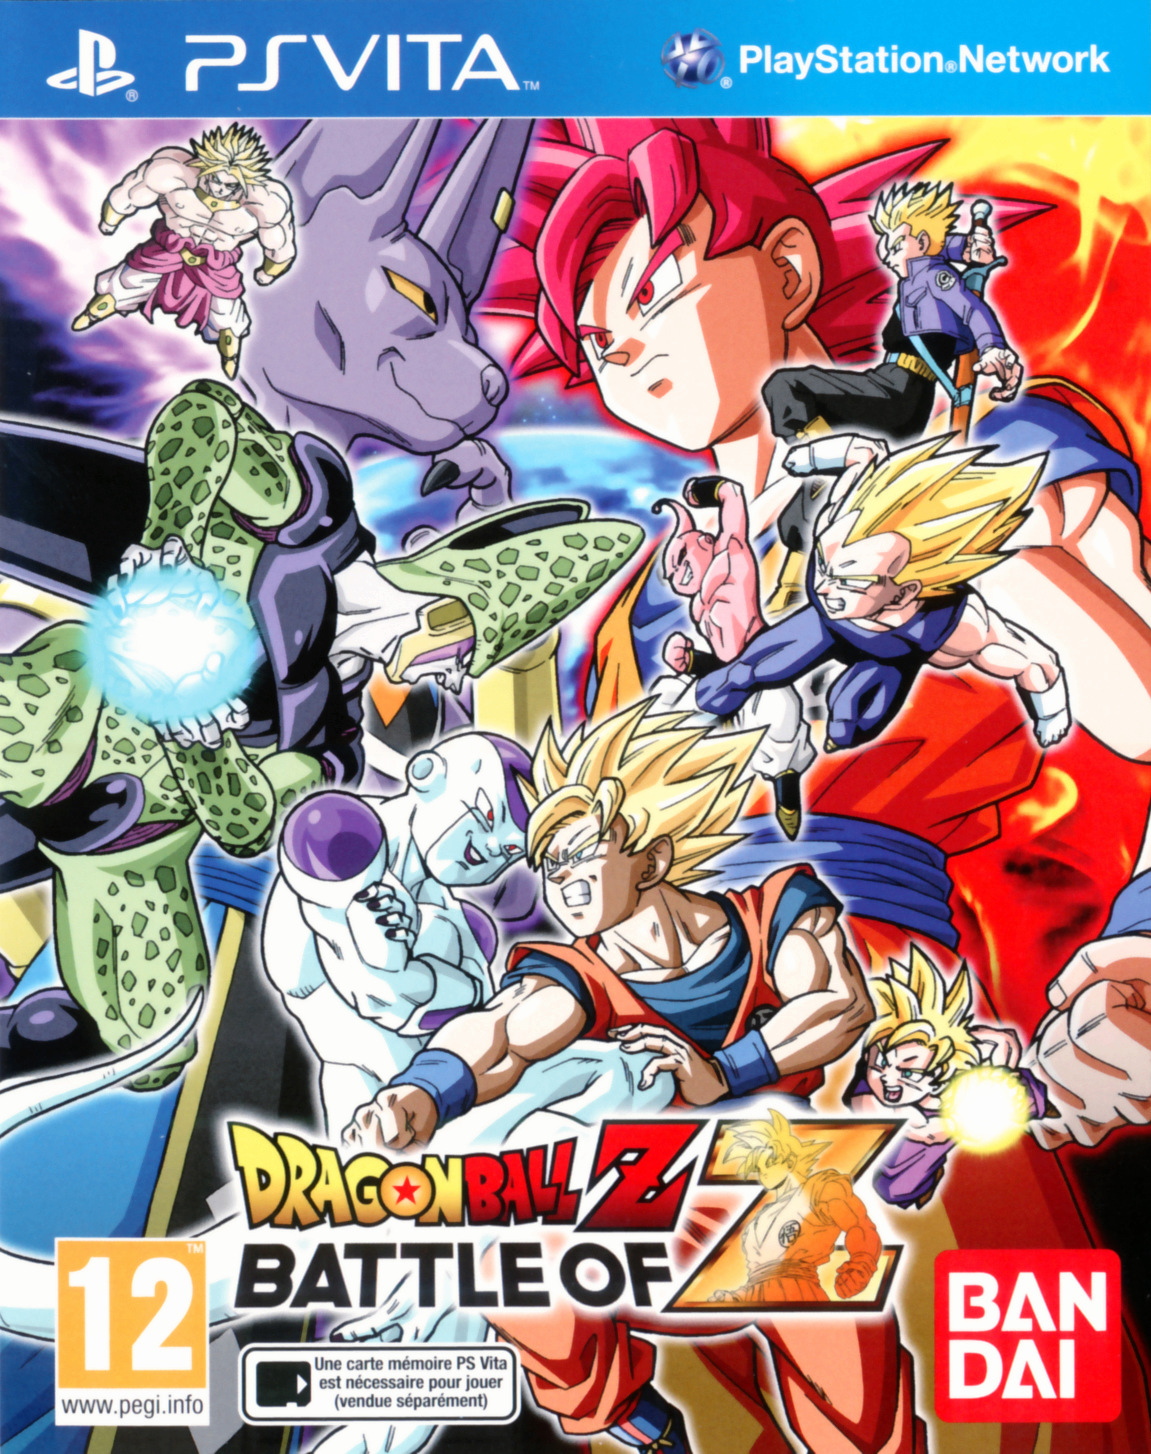 [MANGA/ANIME] Dragon Ball Z Jaquet19